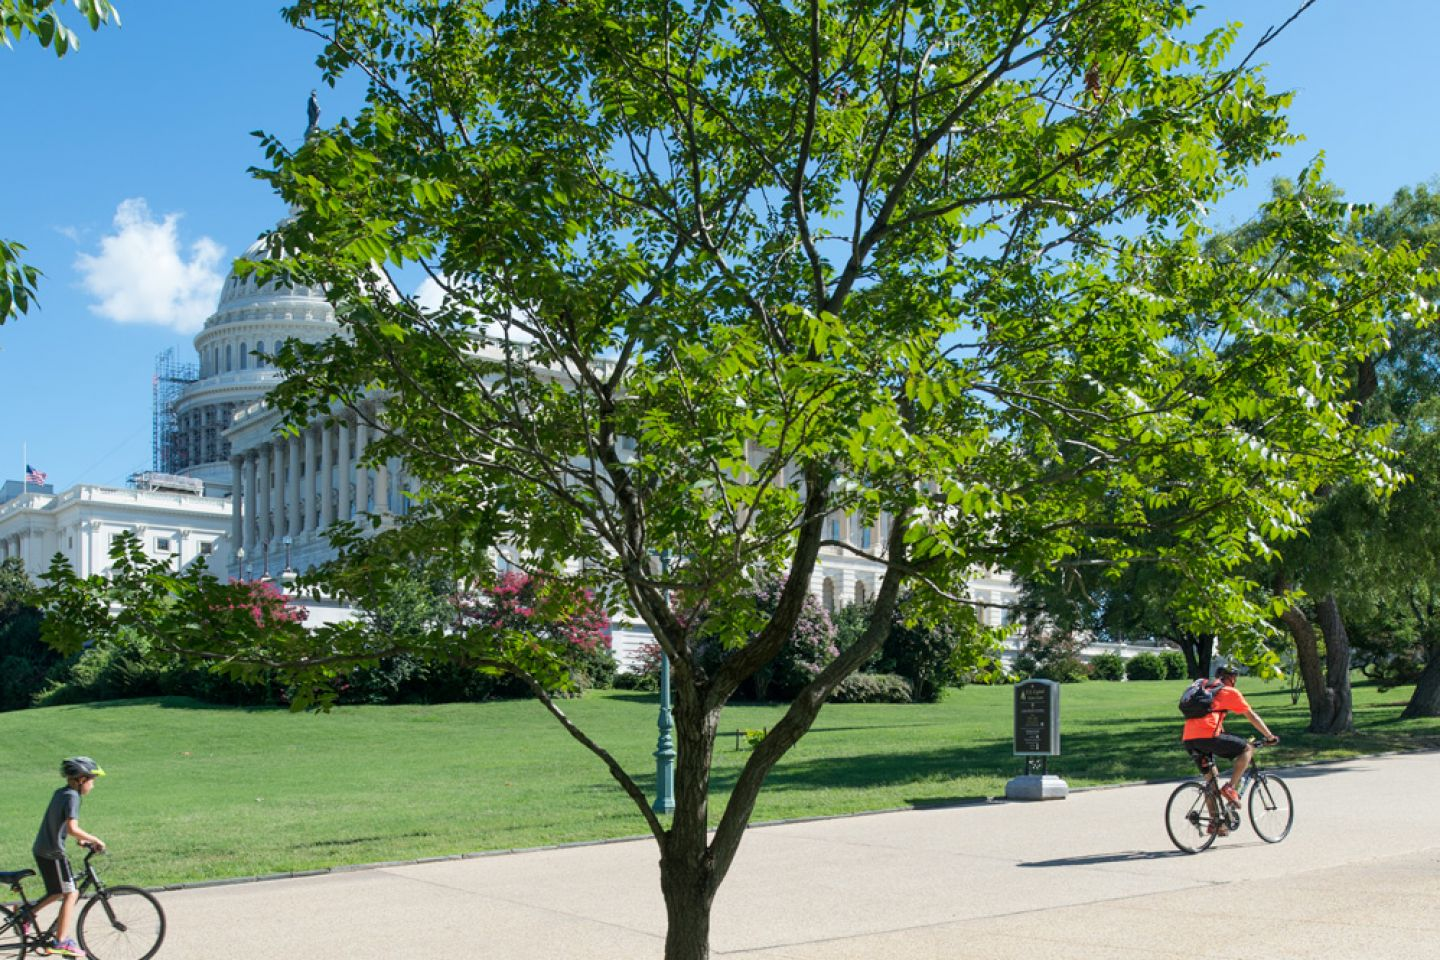 The Wangari Maathai tree on U.S. Capitol Grounds in summer.